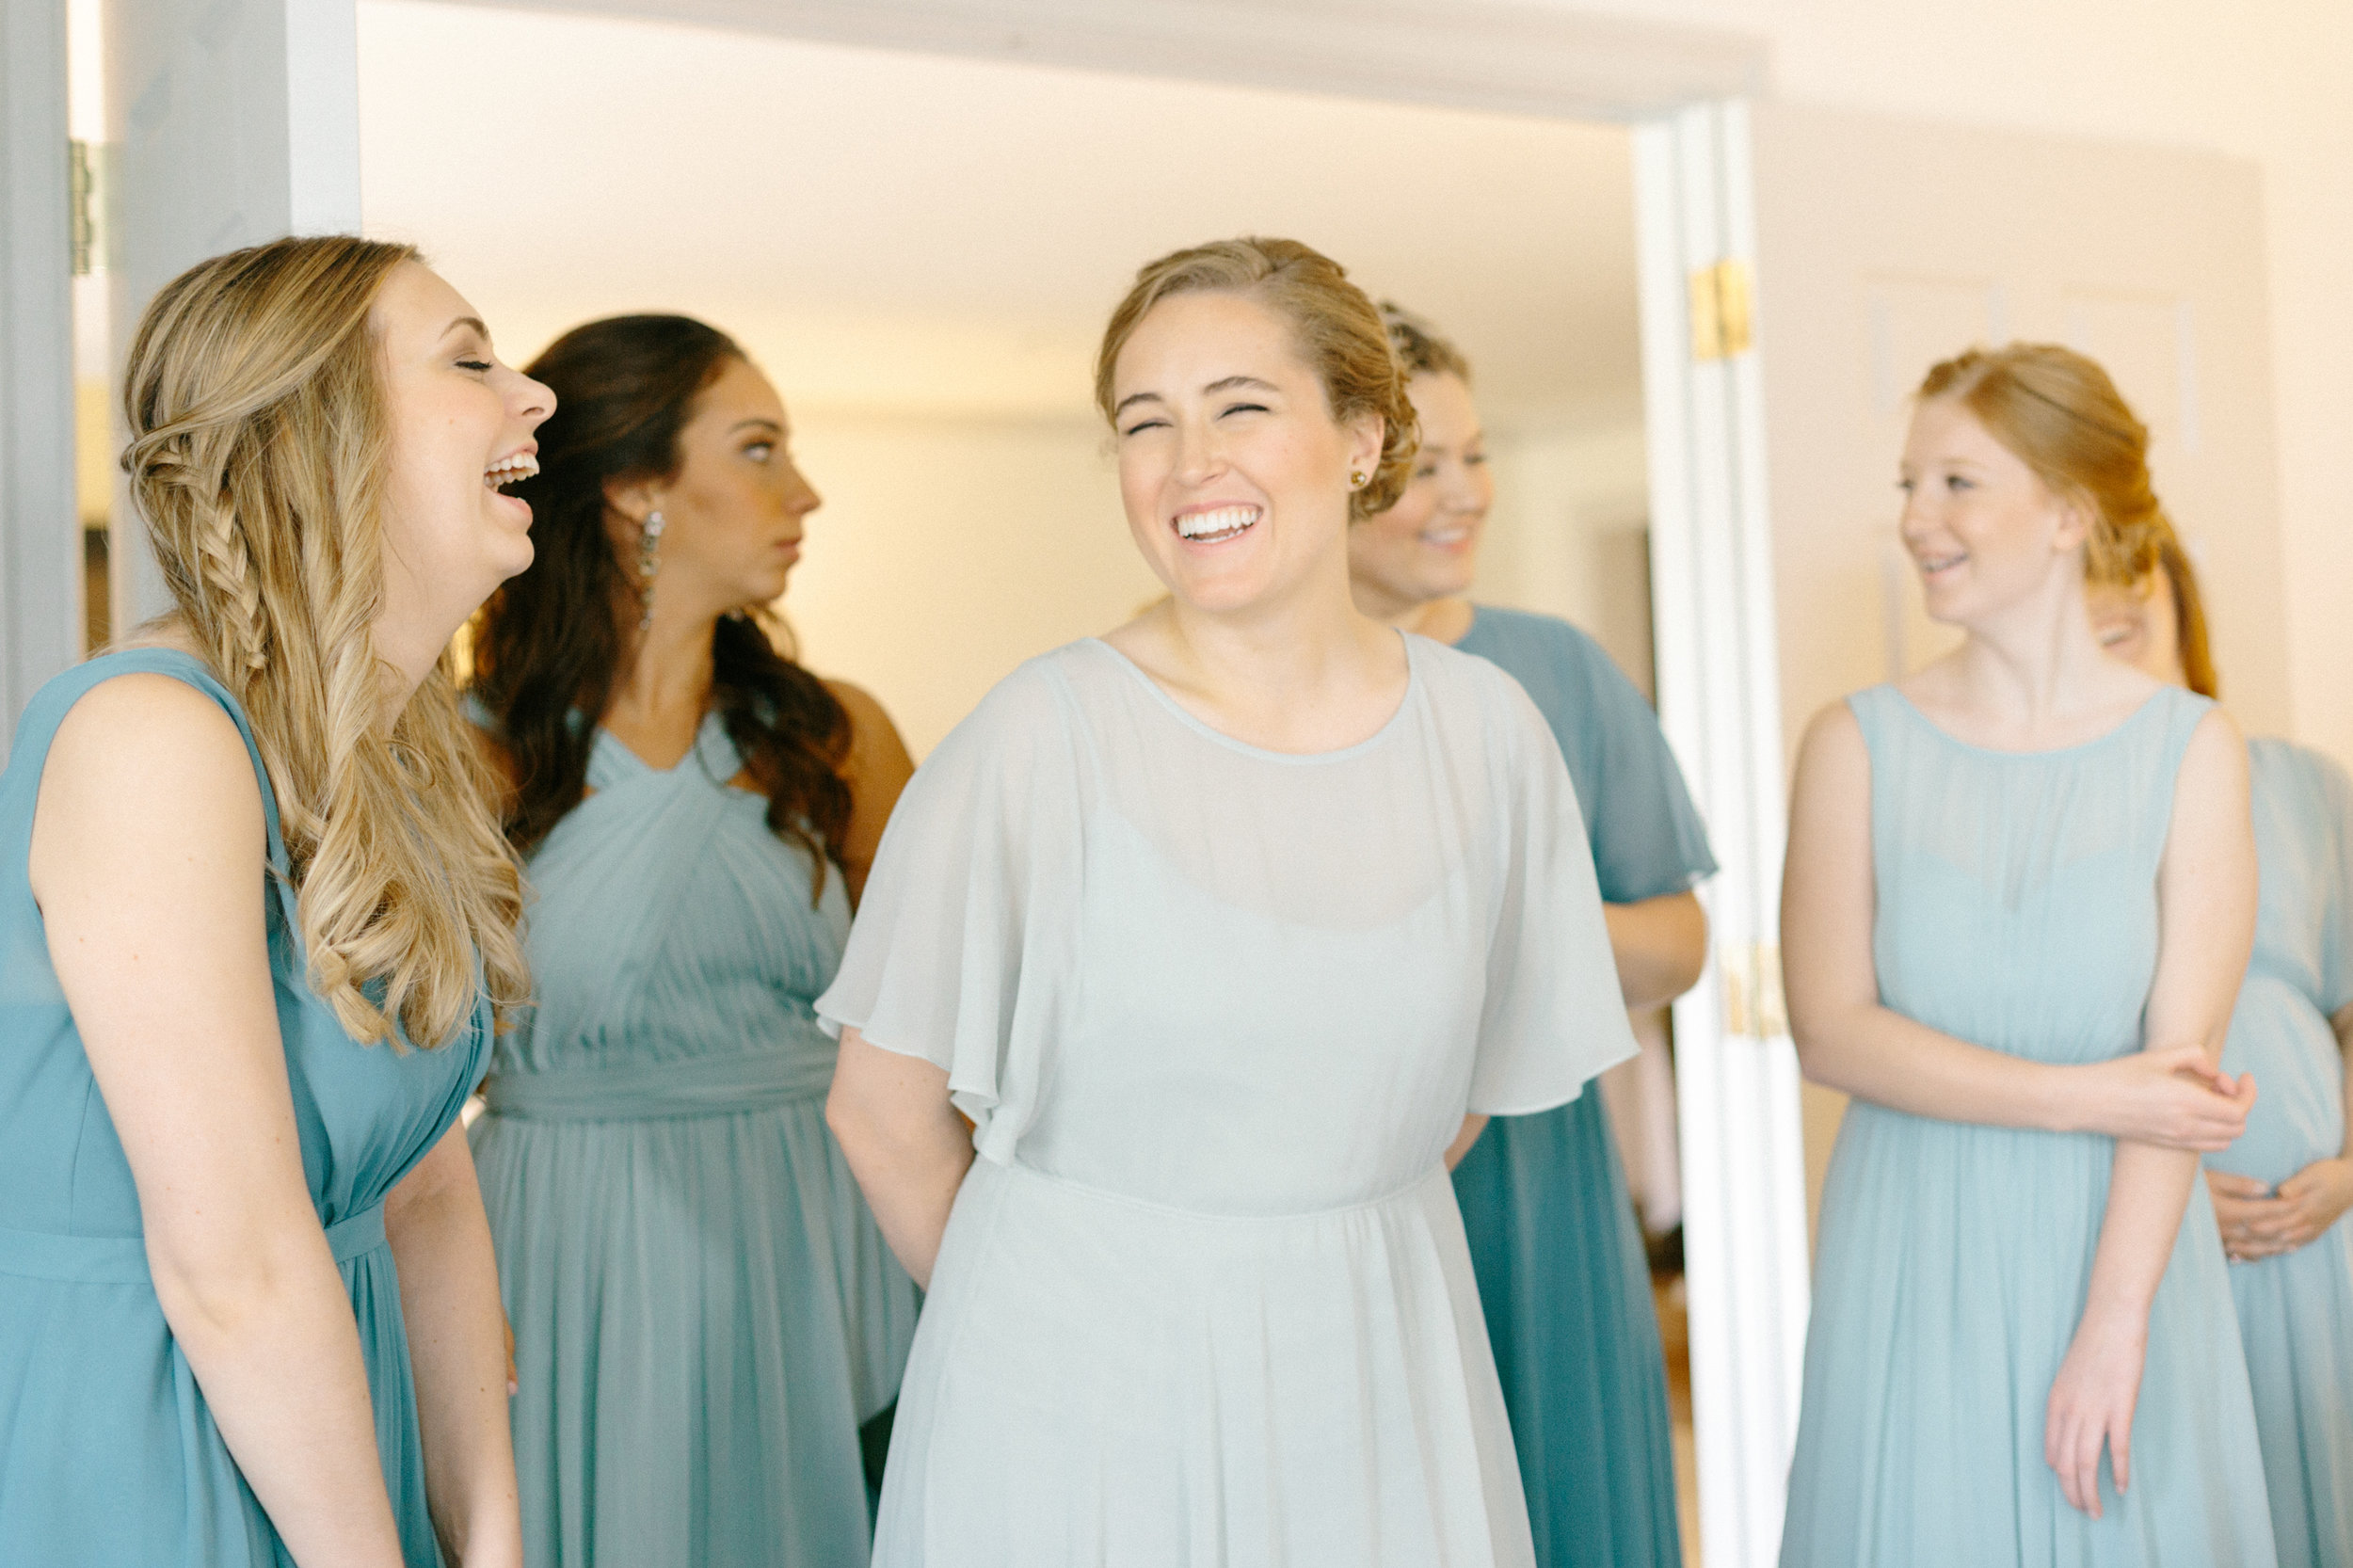 shades-of-blue-bridesmaids-dresses